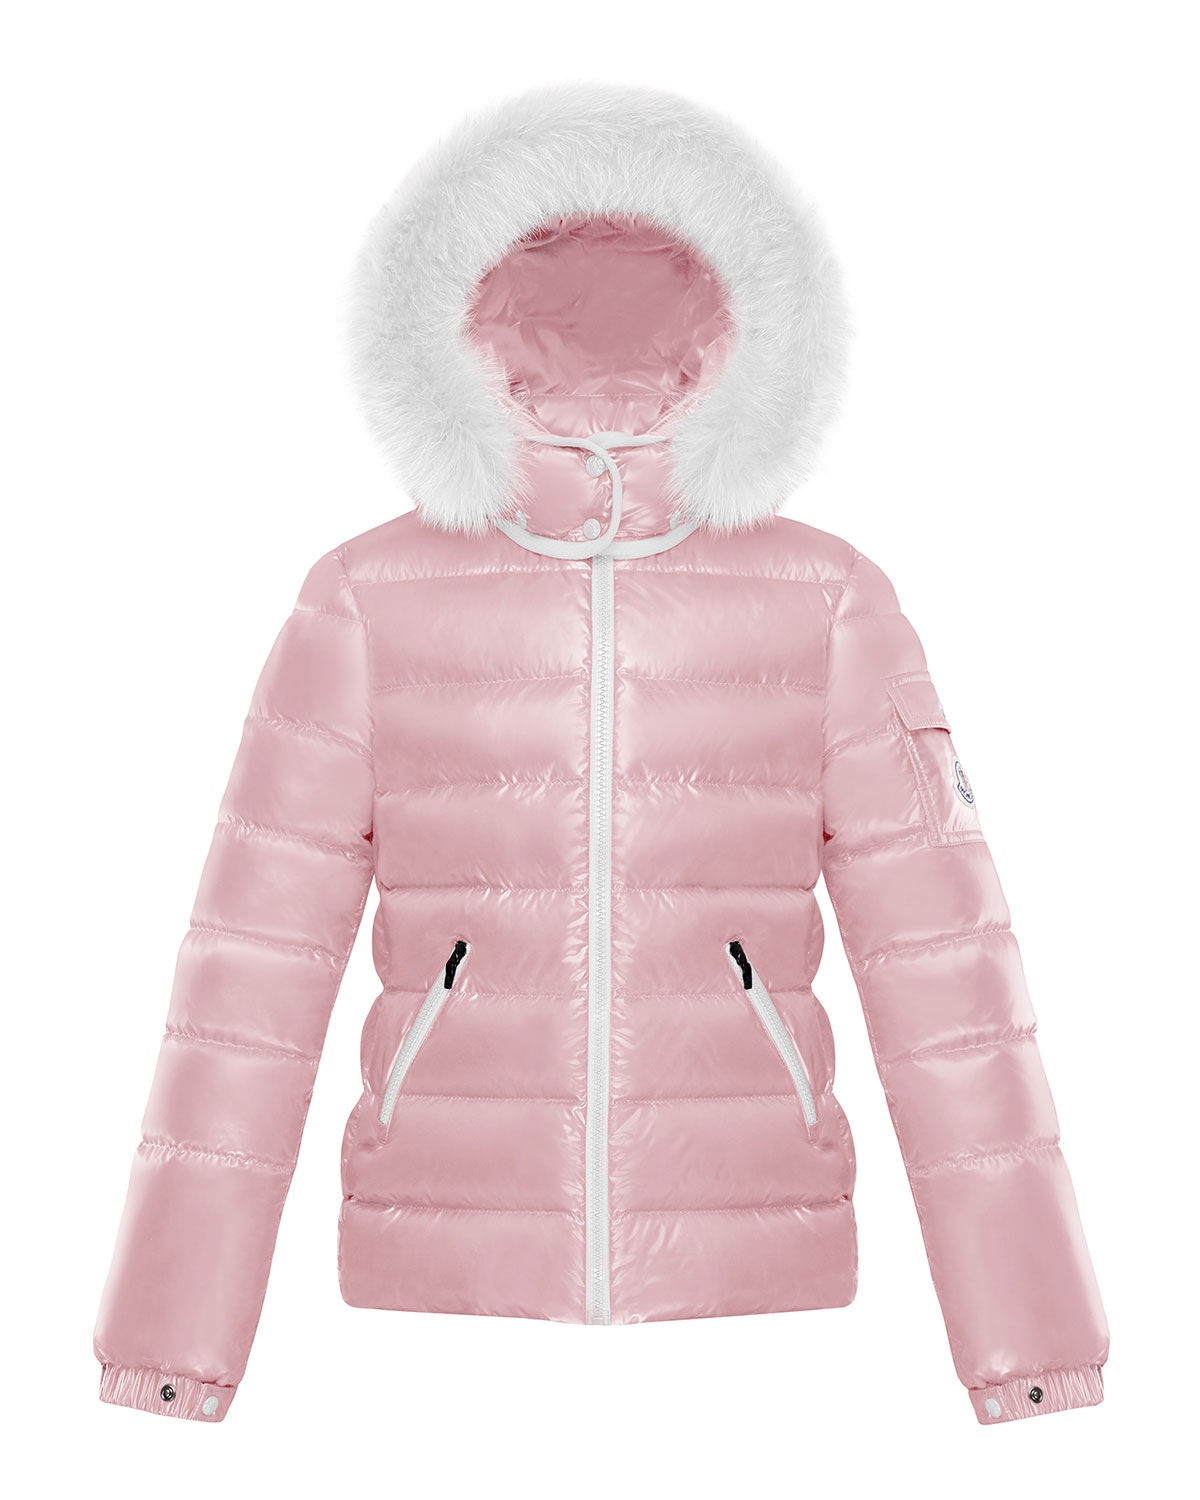 238bcb8f5 Girl's Bady Quilted Jacket w/ Fur Trimmed Hood, Size 8-14